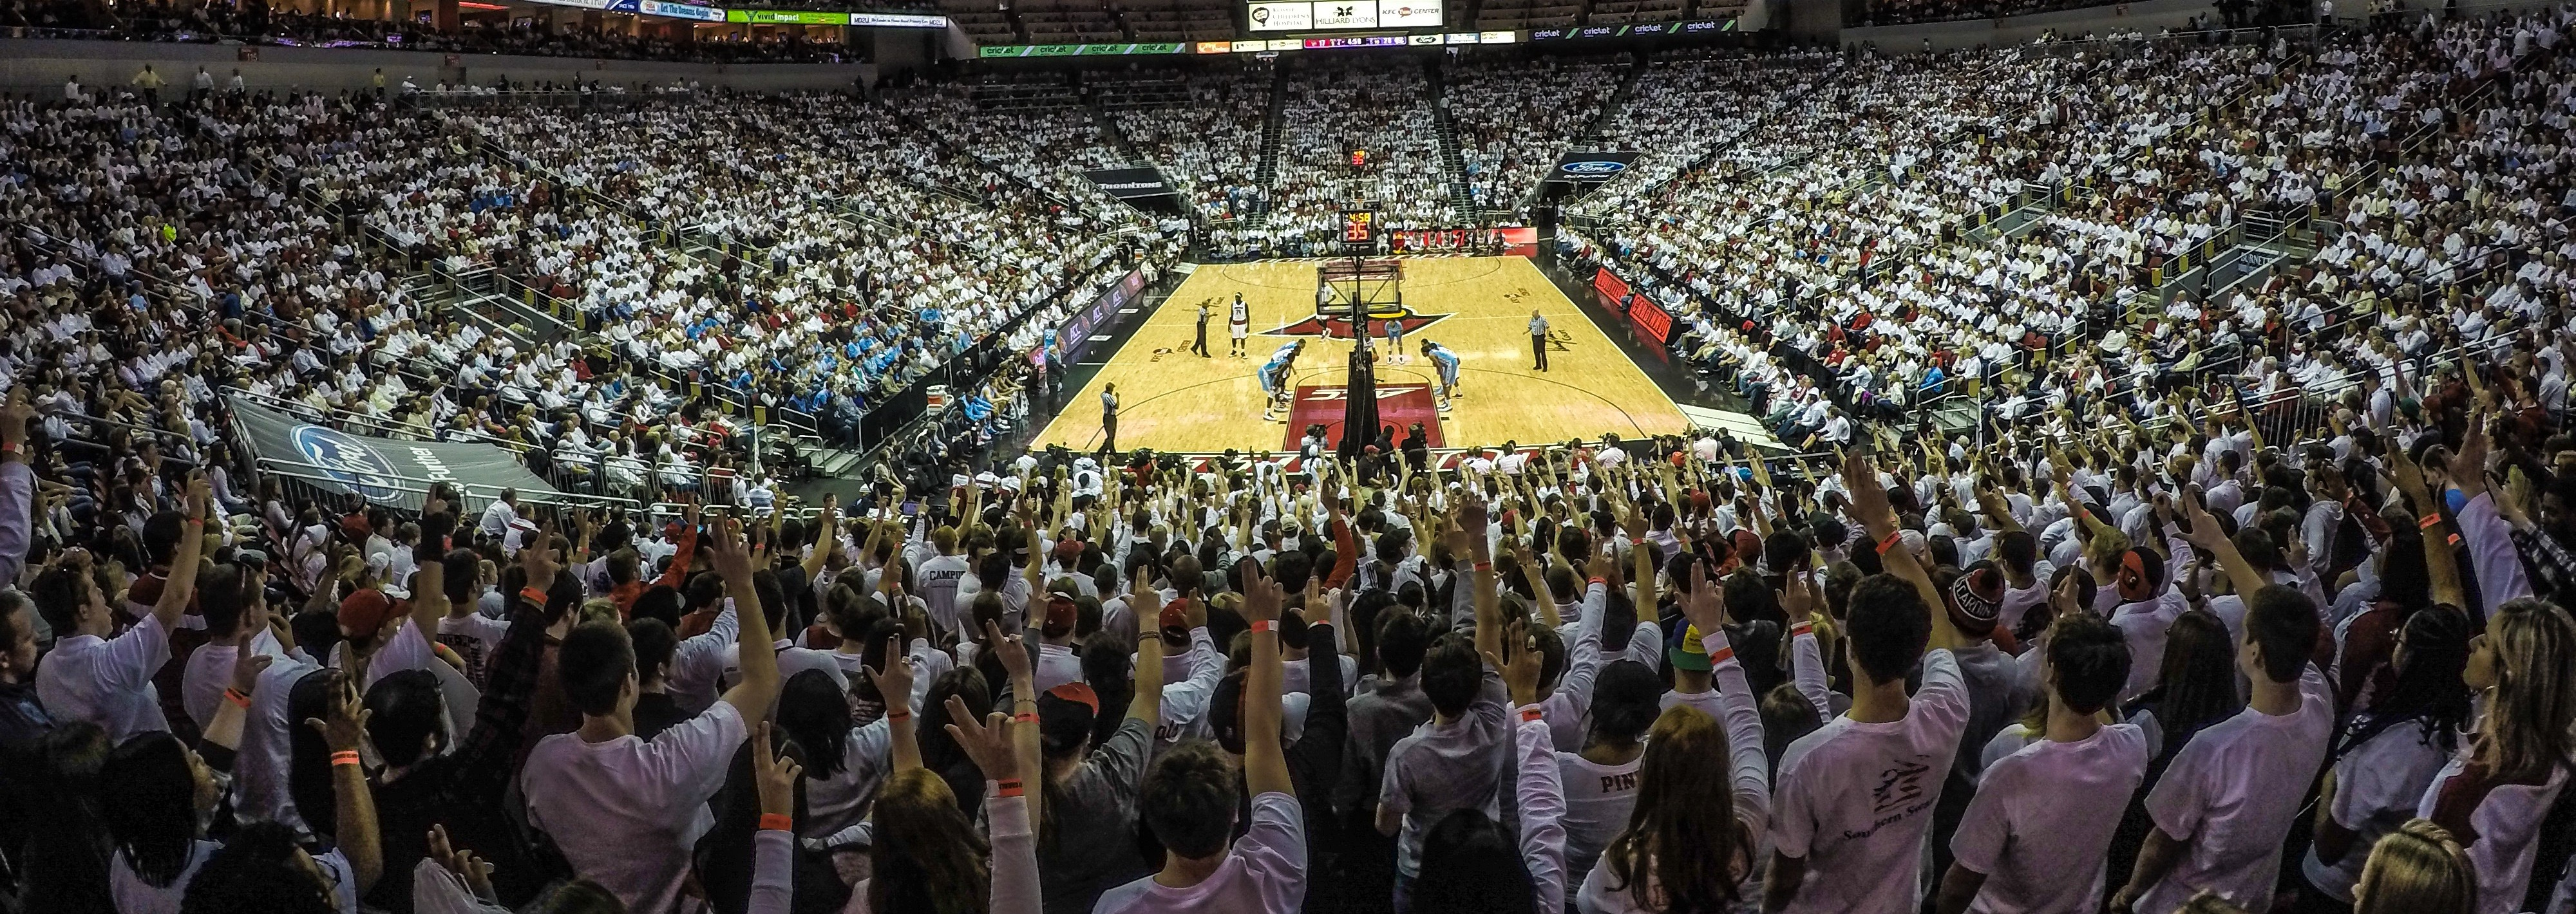 Student Section Ls White Out Louisville vs. North Carolina 1-31-2015 Photo by Seth Bloom Fitted